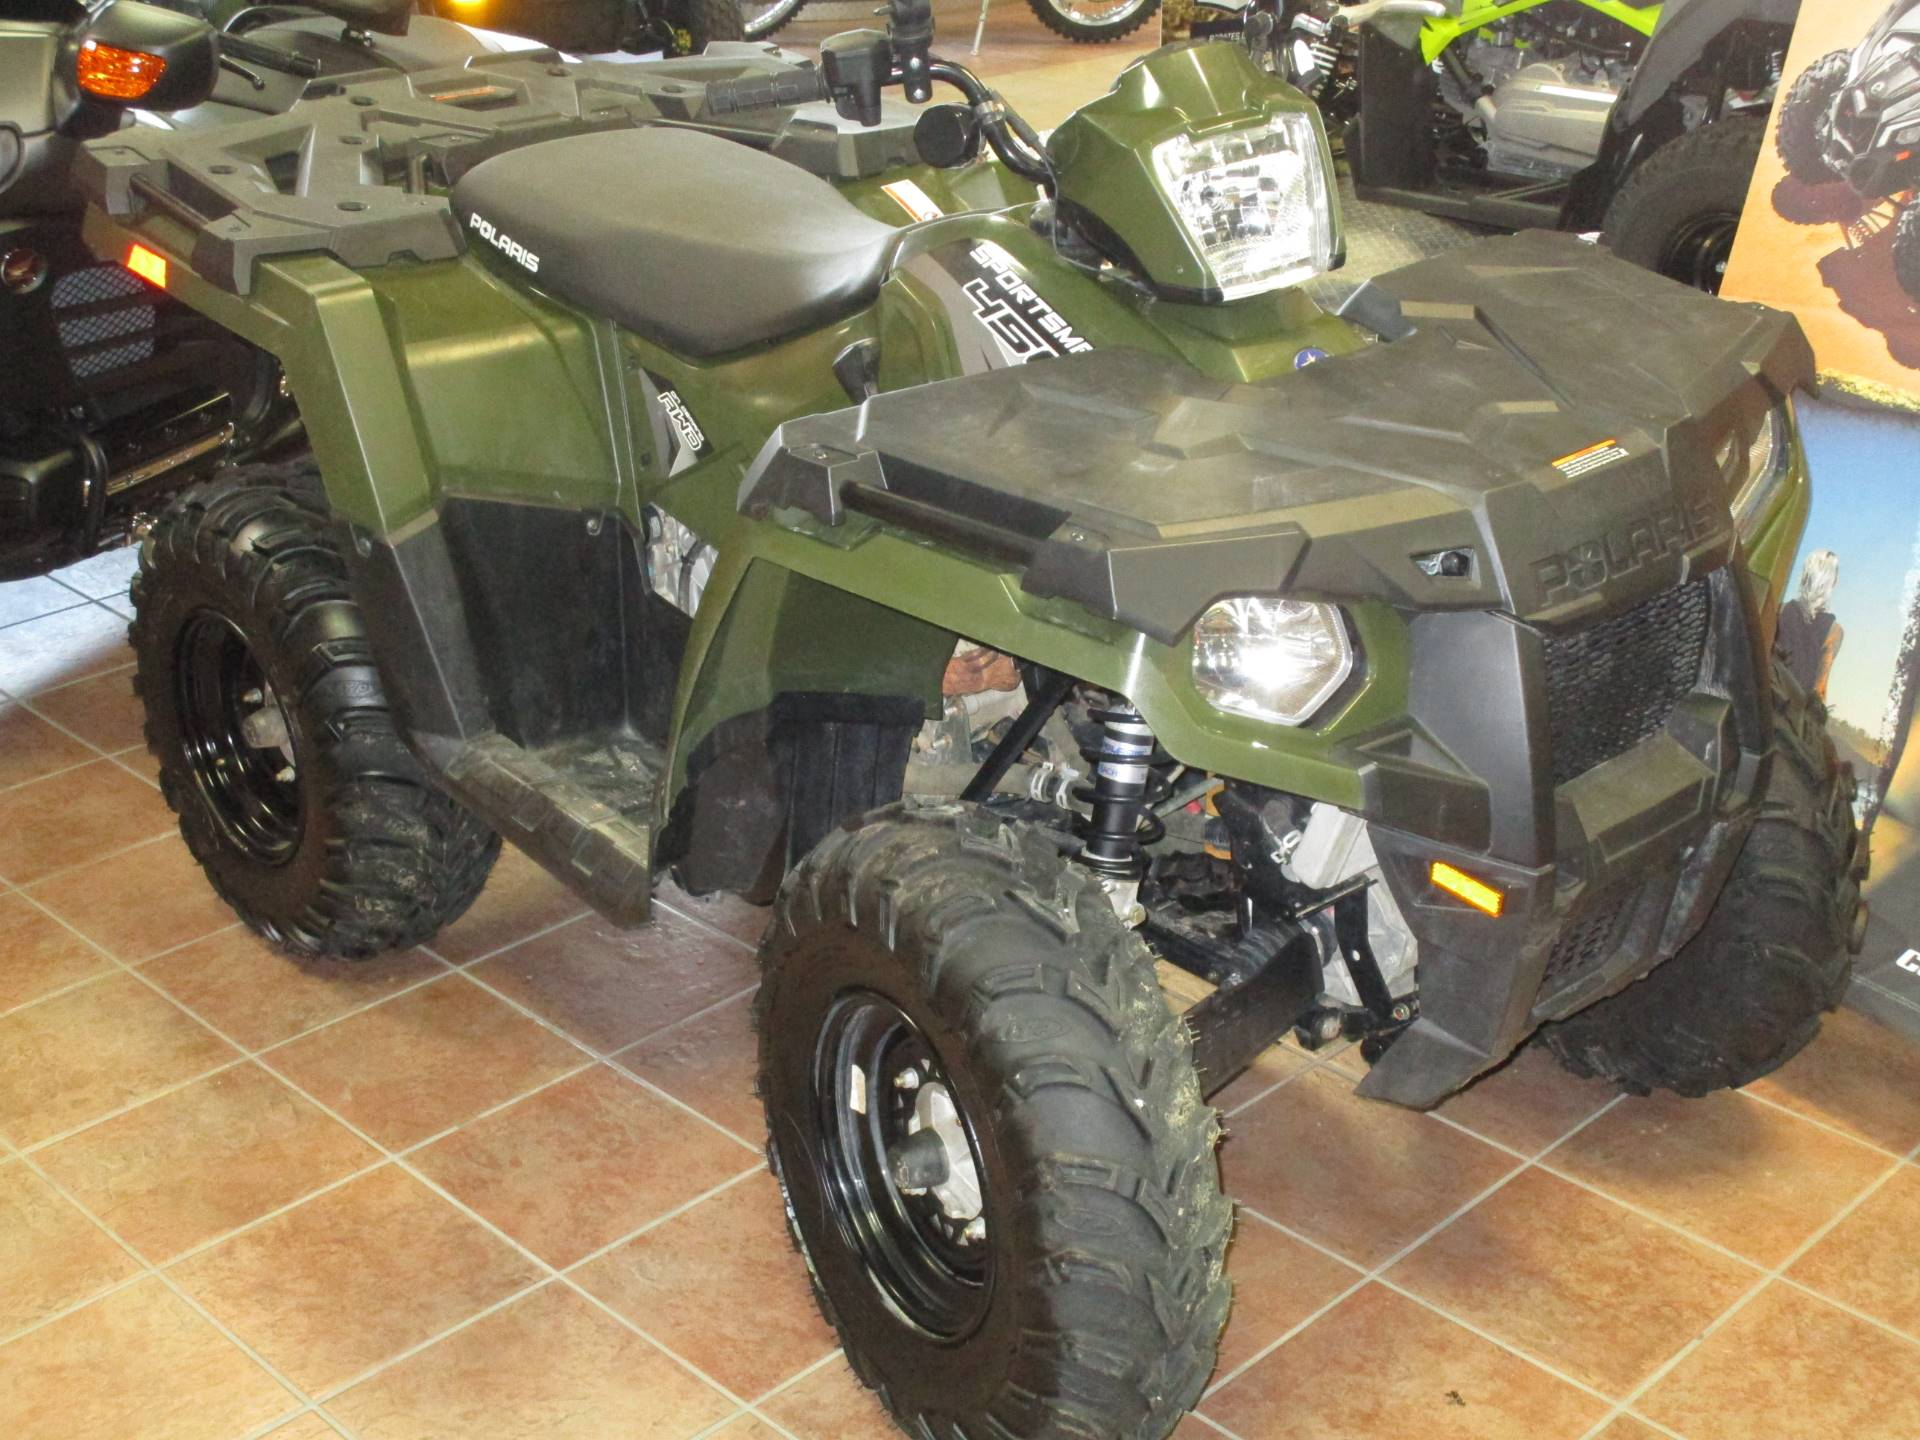 2017 Polaris Sportsman 450 H.O. in Conroe, Texas - Photo 2